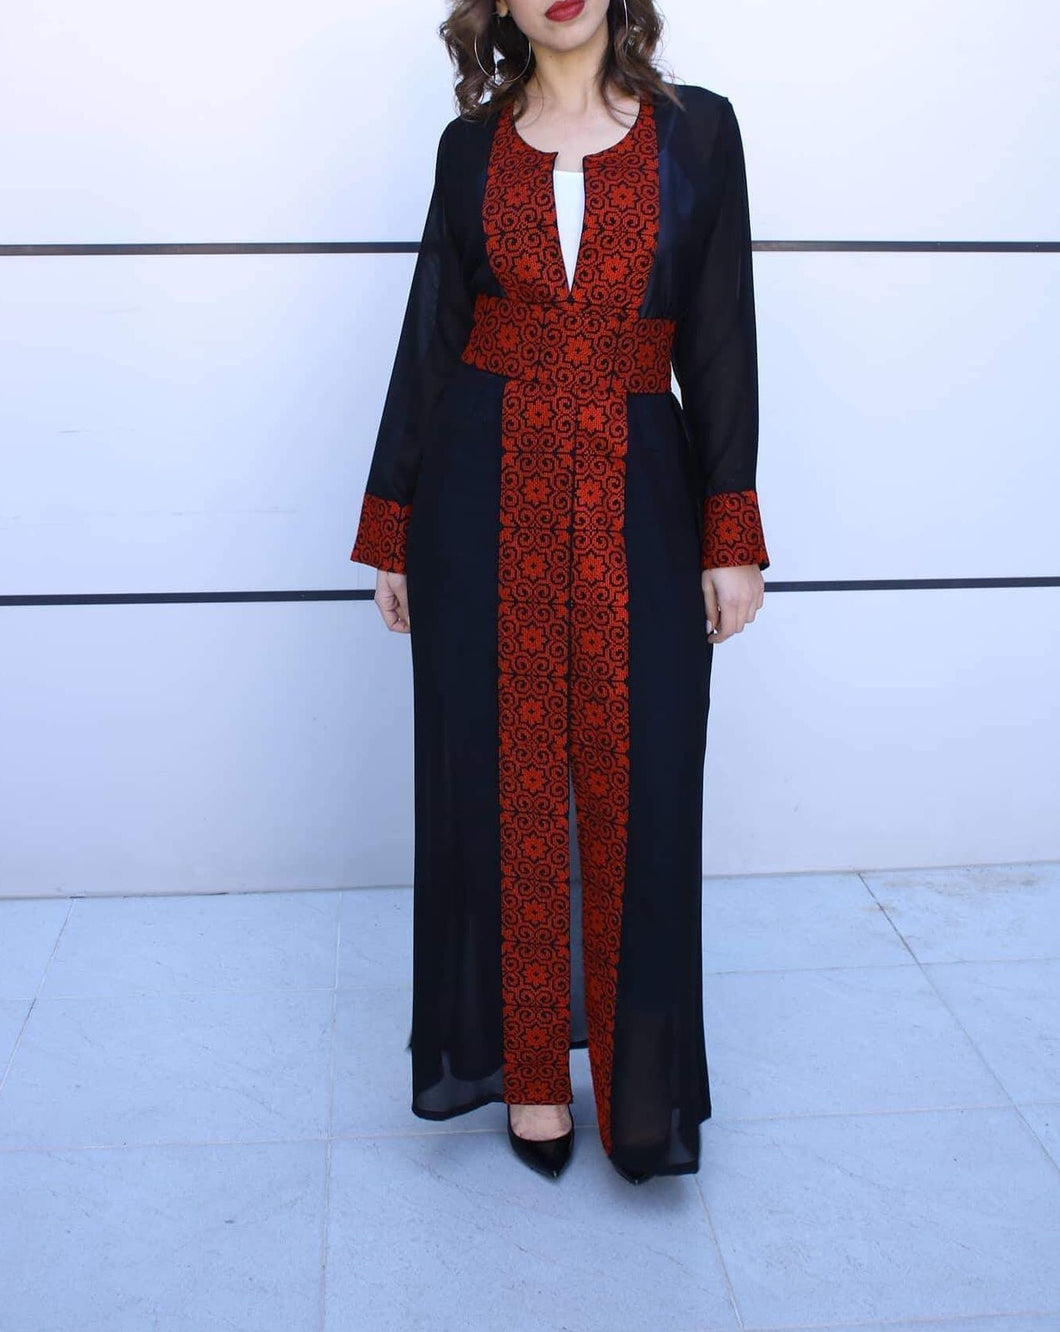 Black and Red Georgette Embroidered Open Abaya Kaftan Maxi Dress Long Sleeve